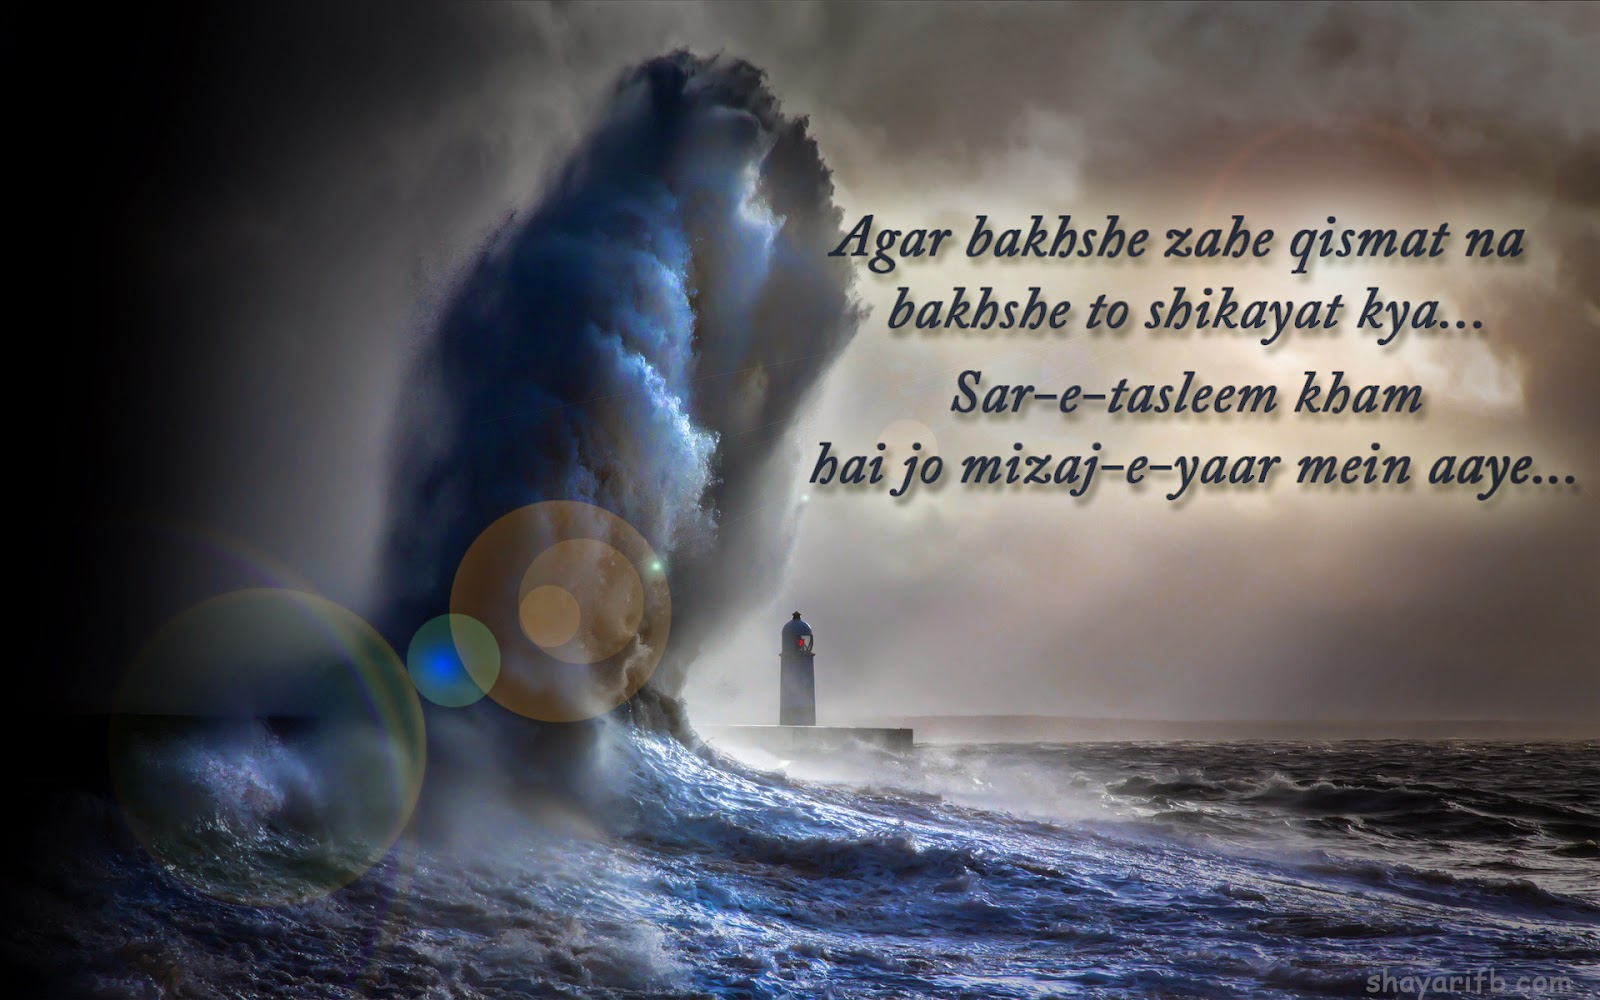 Love Wallpaper Hd Sayri : Heart touching love shayari on life moments Download HD wallpaper Love Shayari and Sad Shayari